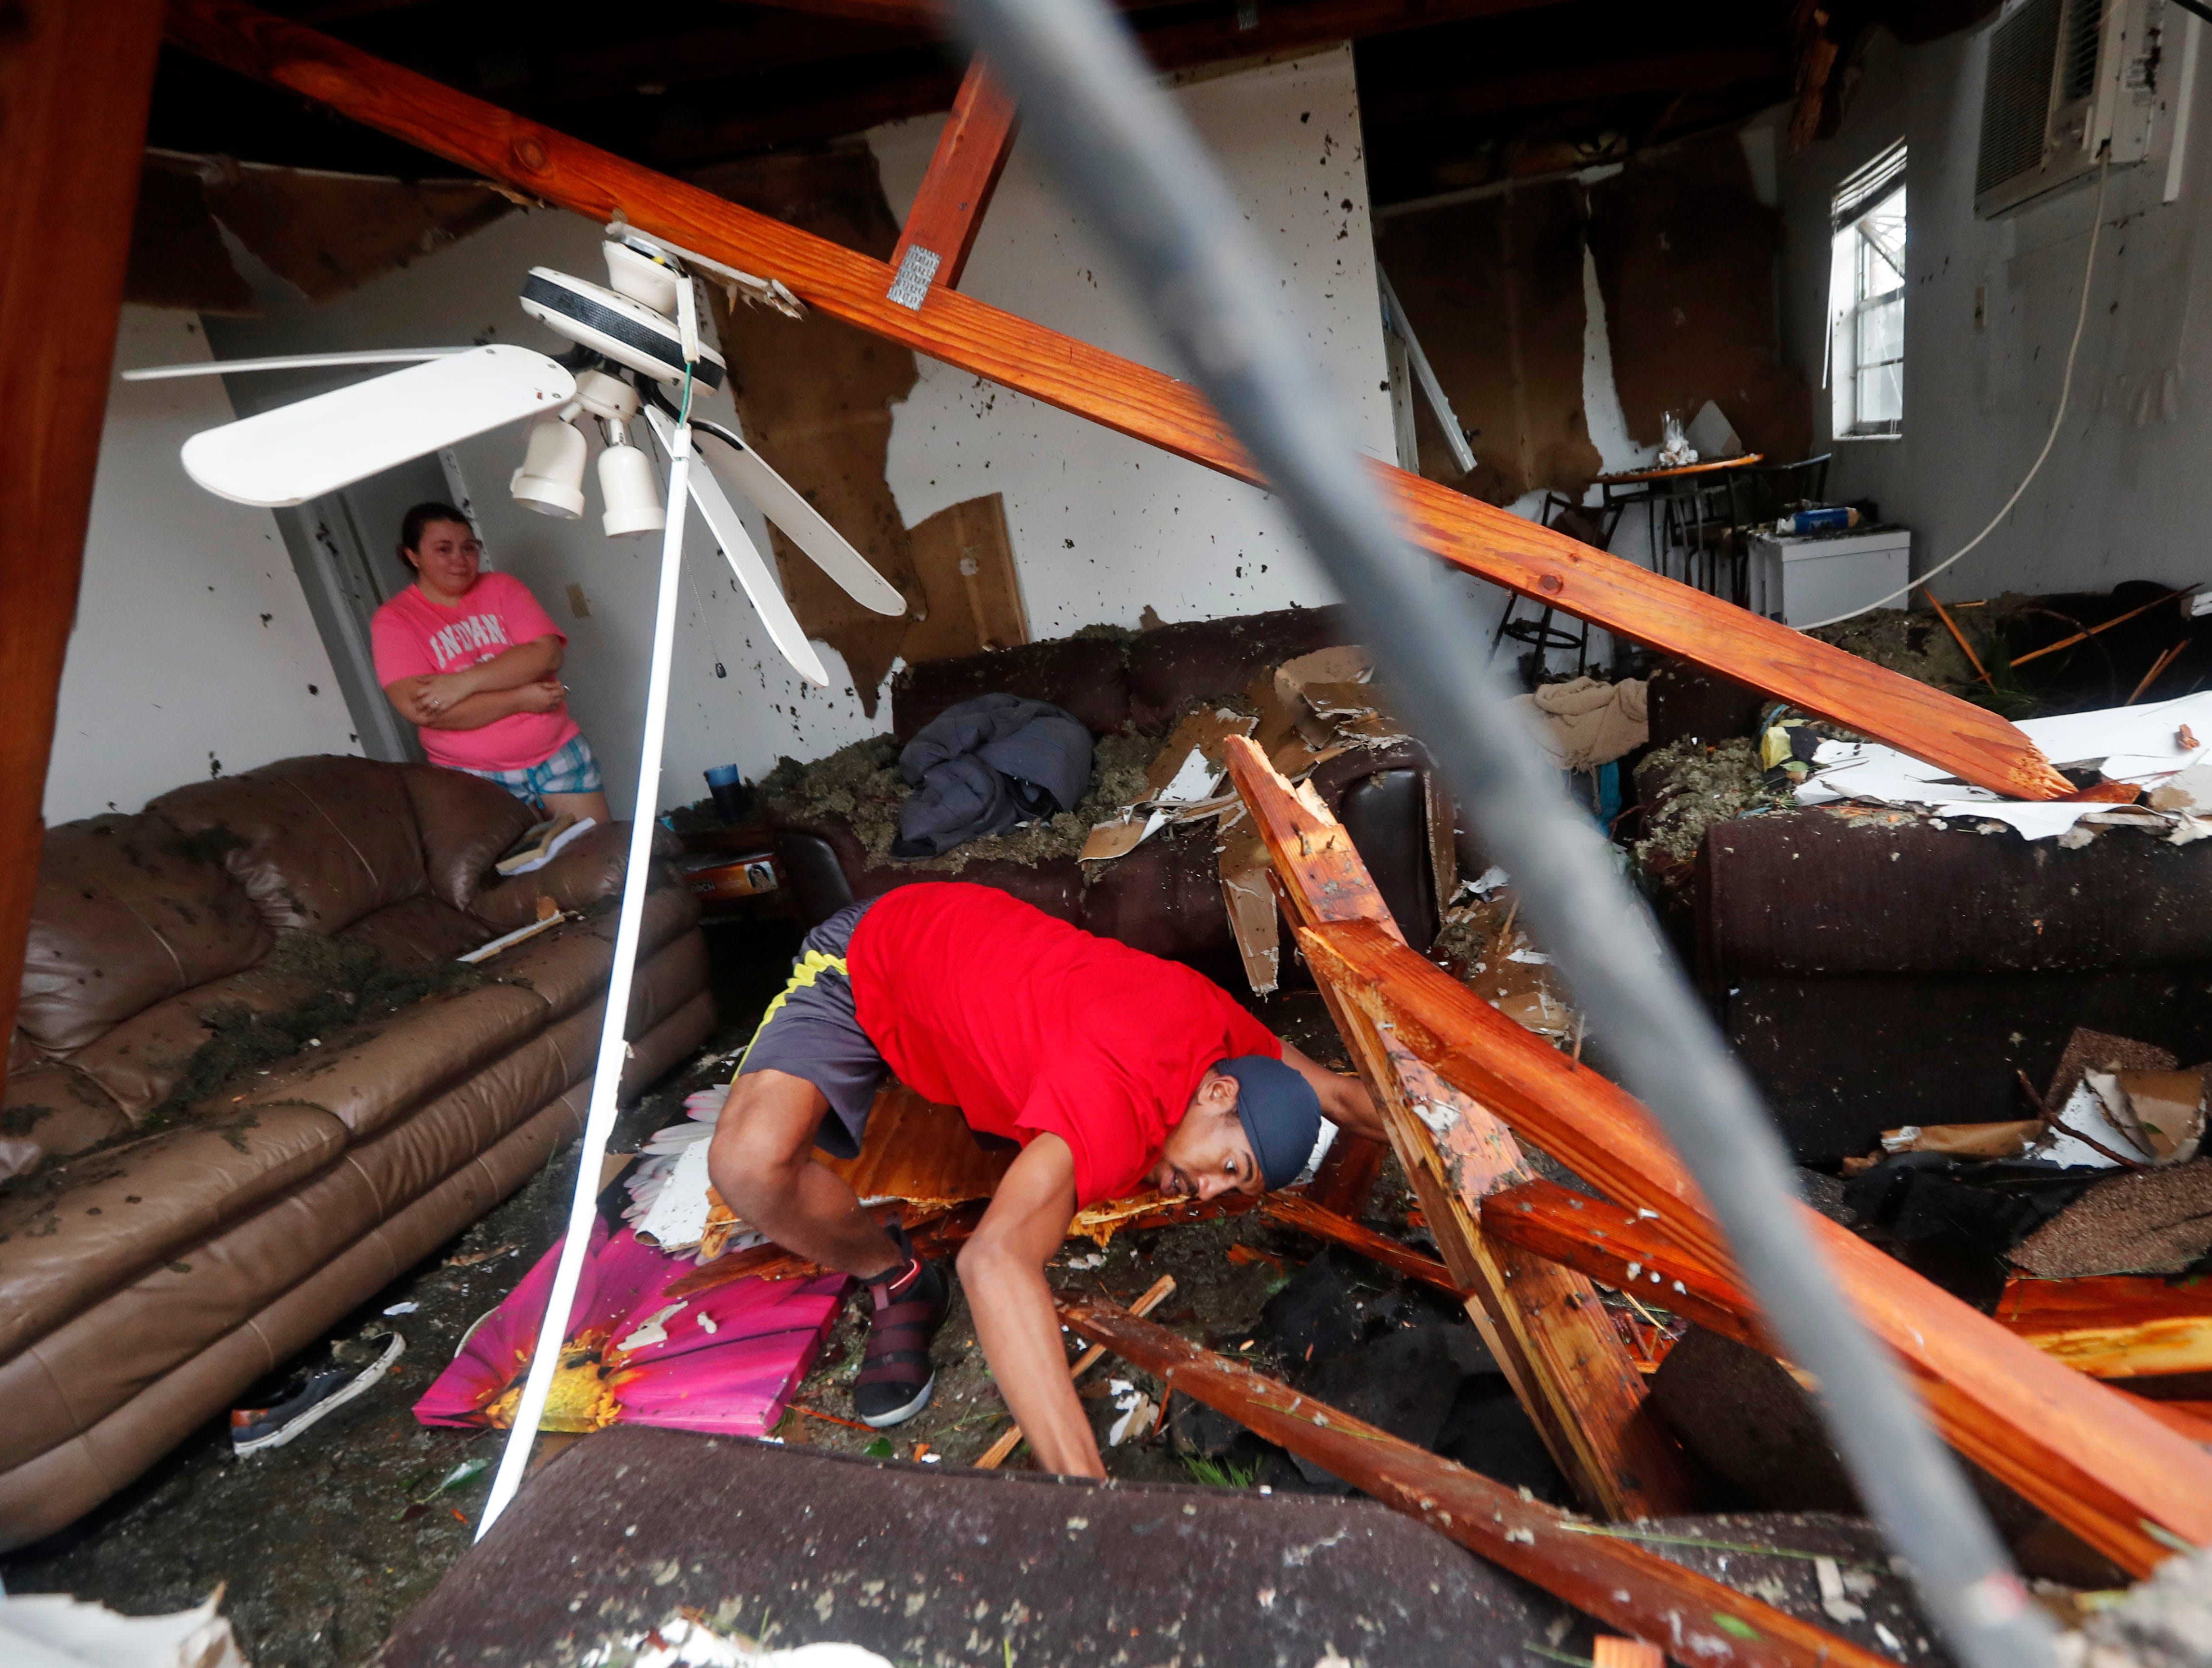 Dorian Carter looks under furniture for a missing cat after several trees fell on their home during Hurricane Michael in Panama City, Fla., Wednesday, Oct. 10, 2018. Supercharged by abnormally warm waters in the Gulf of Mexico, Hurricane Michael slammed into the Florida Panhandle with terrifying winds of 155 mph Wednesday, splintering homes and submerging neighborhoods. (AP Photo/Gerald Herbert)